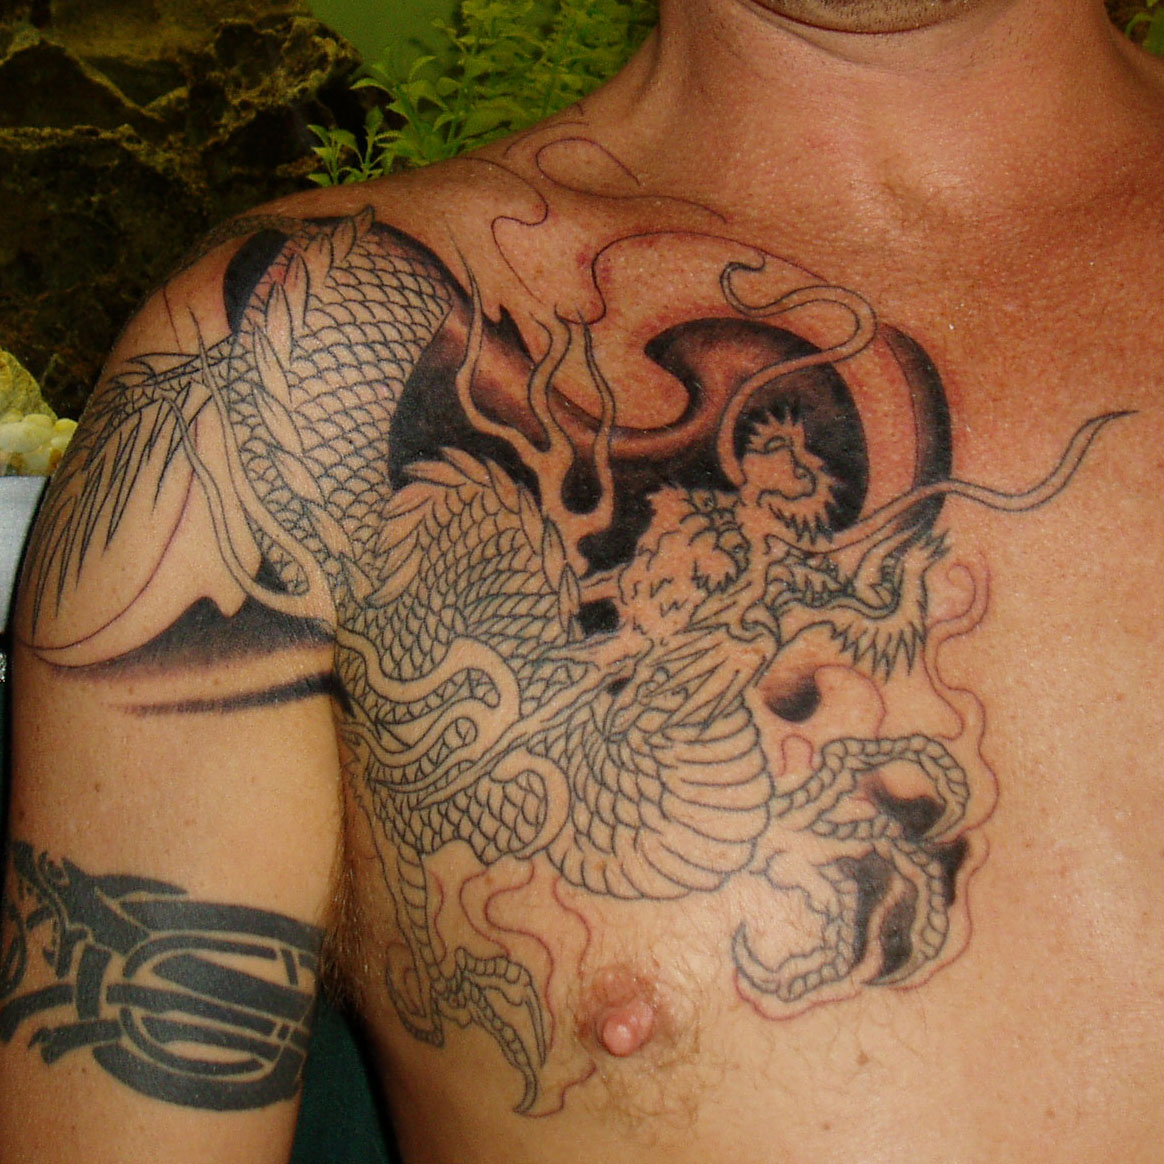 Dragon Tattoos: Image Gallary 9: Beautiful Japanese Dragon Tattoo Designs